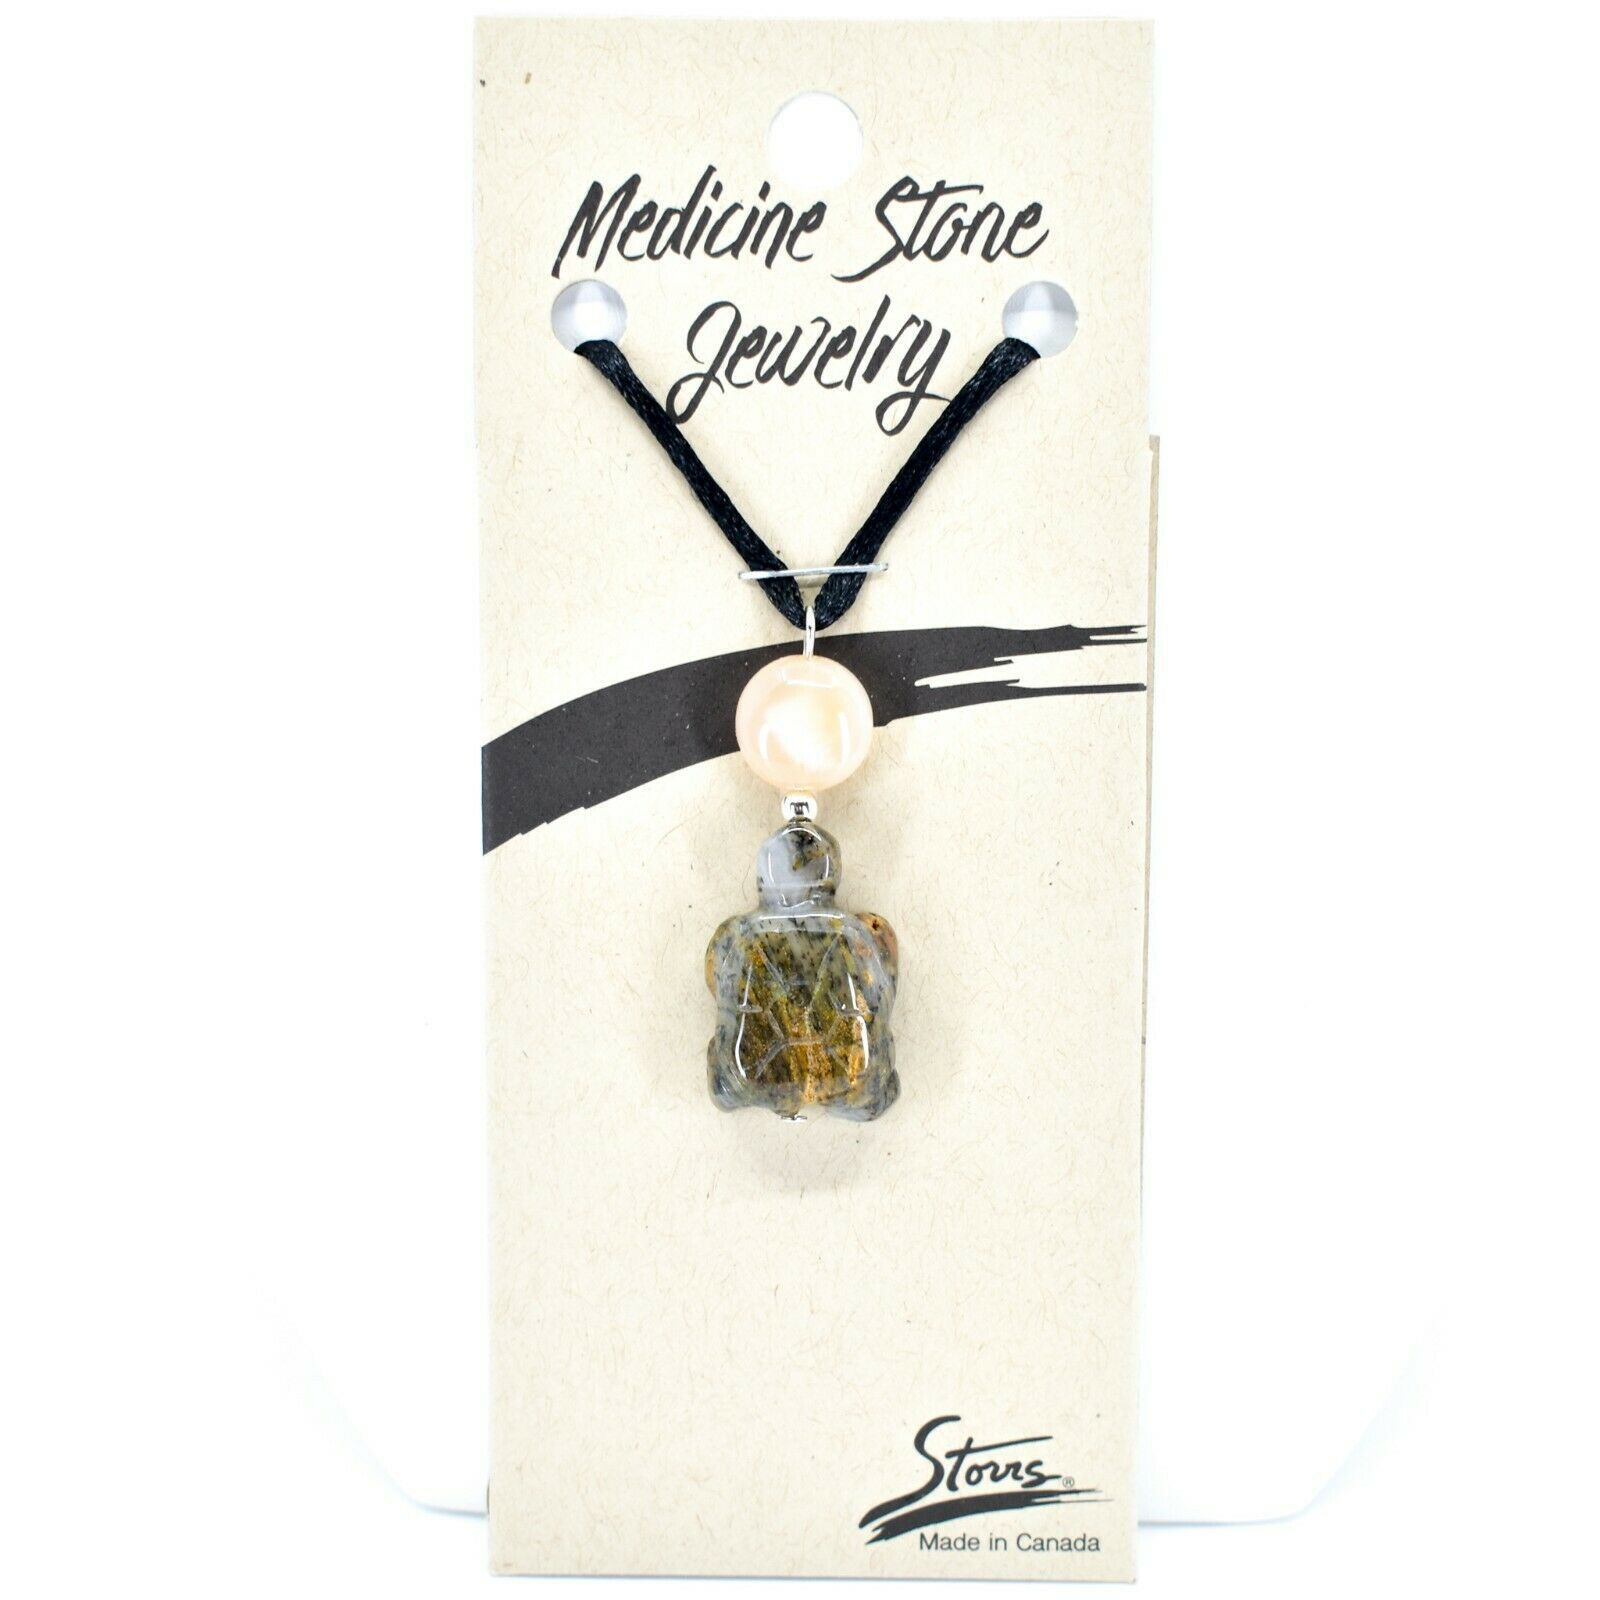 A.T. Storrs Handcrafted Harmony Serenity Medicine Stone Turtle Pendant Necklace